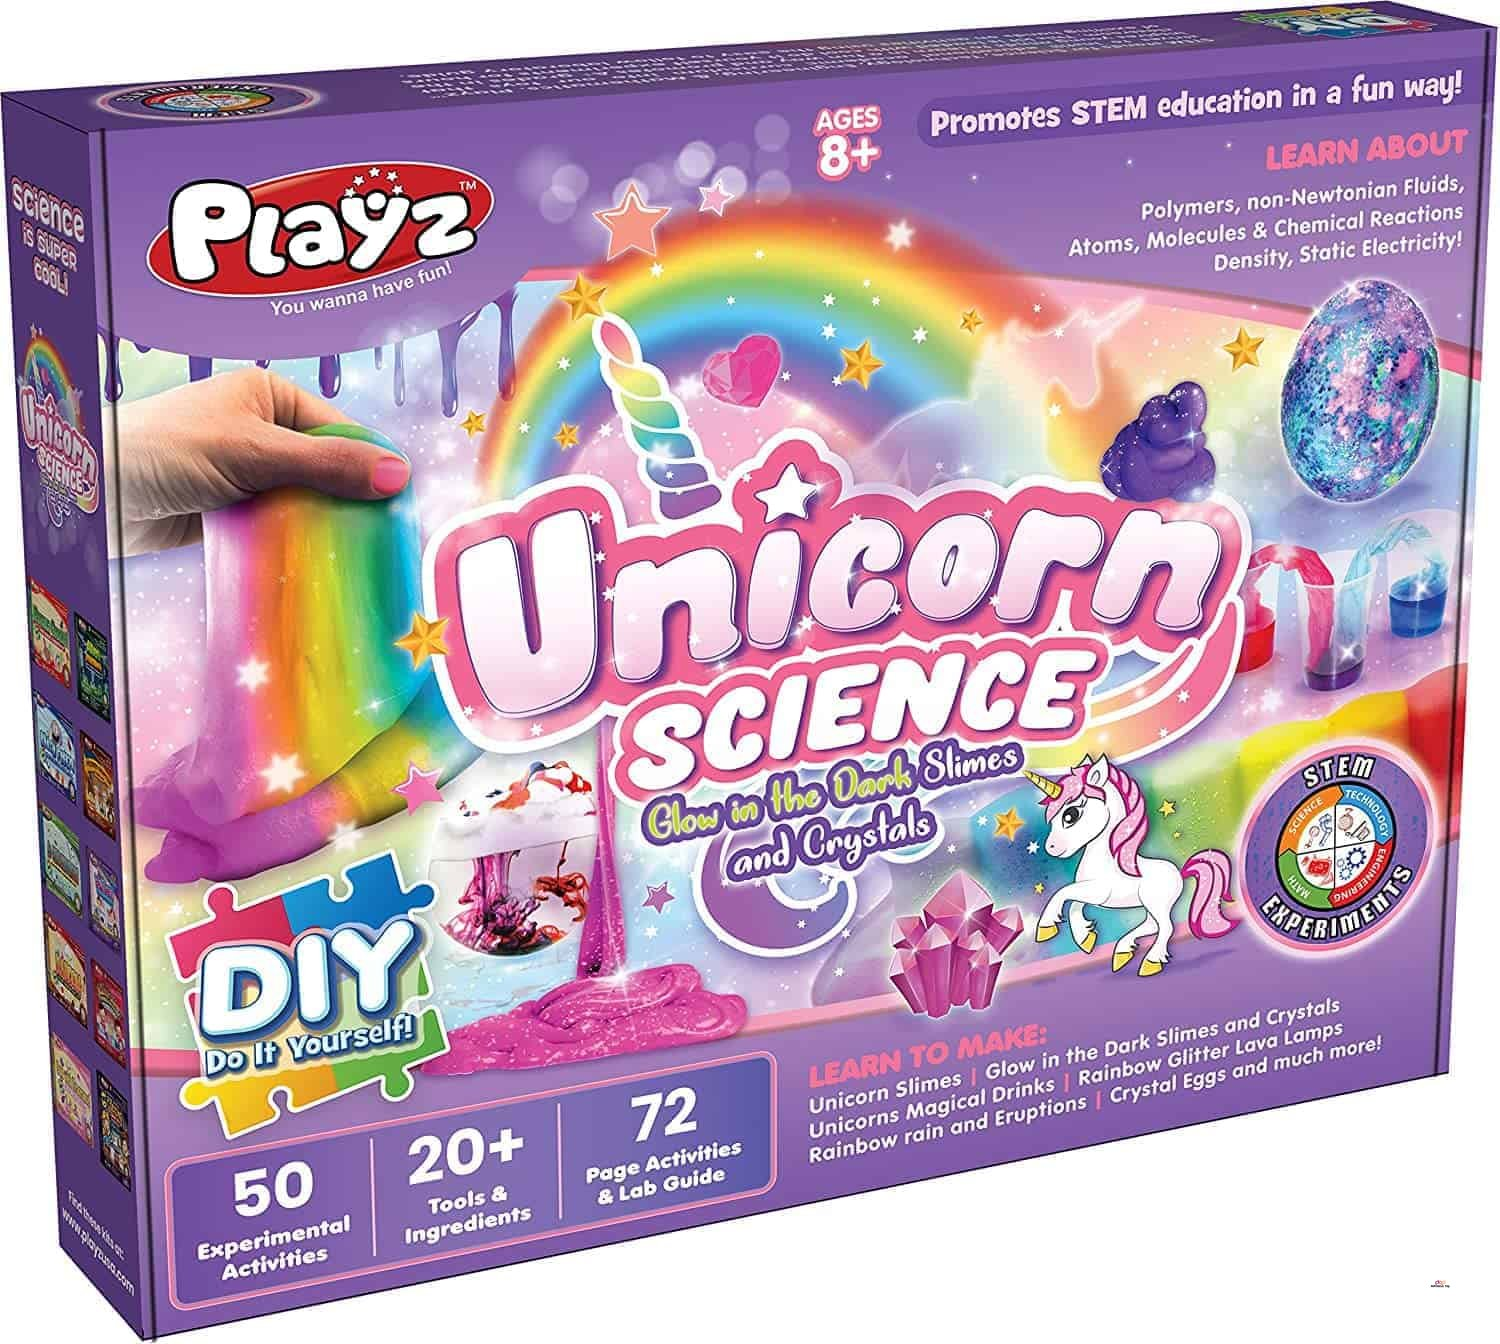 Small product image of Glow in the Dark Slime Science Kit